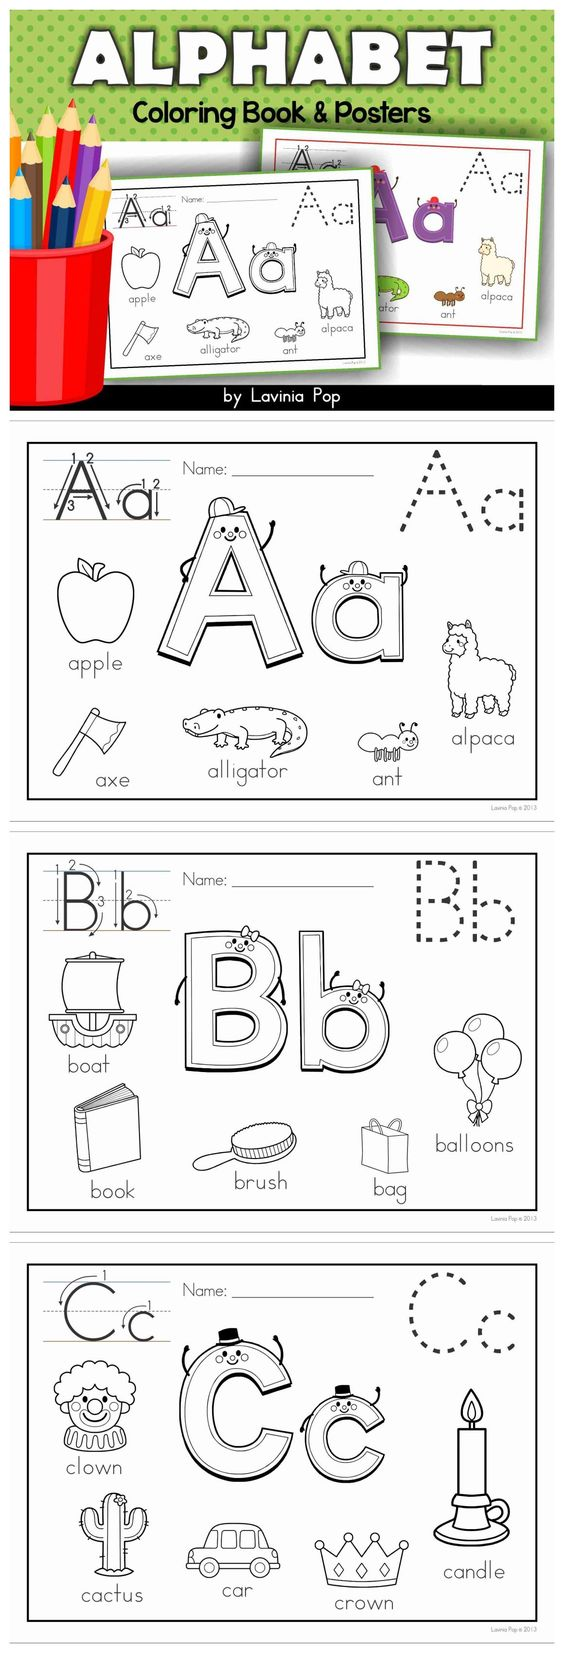 Alphabet Coloring Book and Posters. Includes extra pages for beginning long vowel sounds and soft C and G sounds.